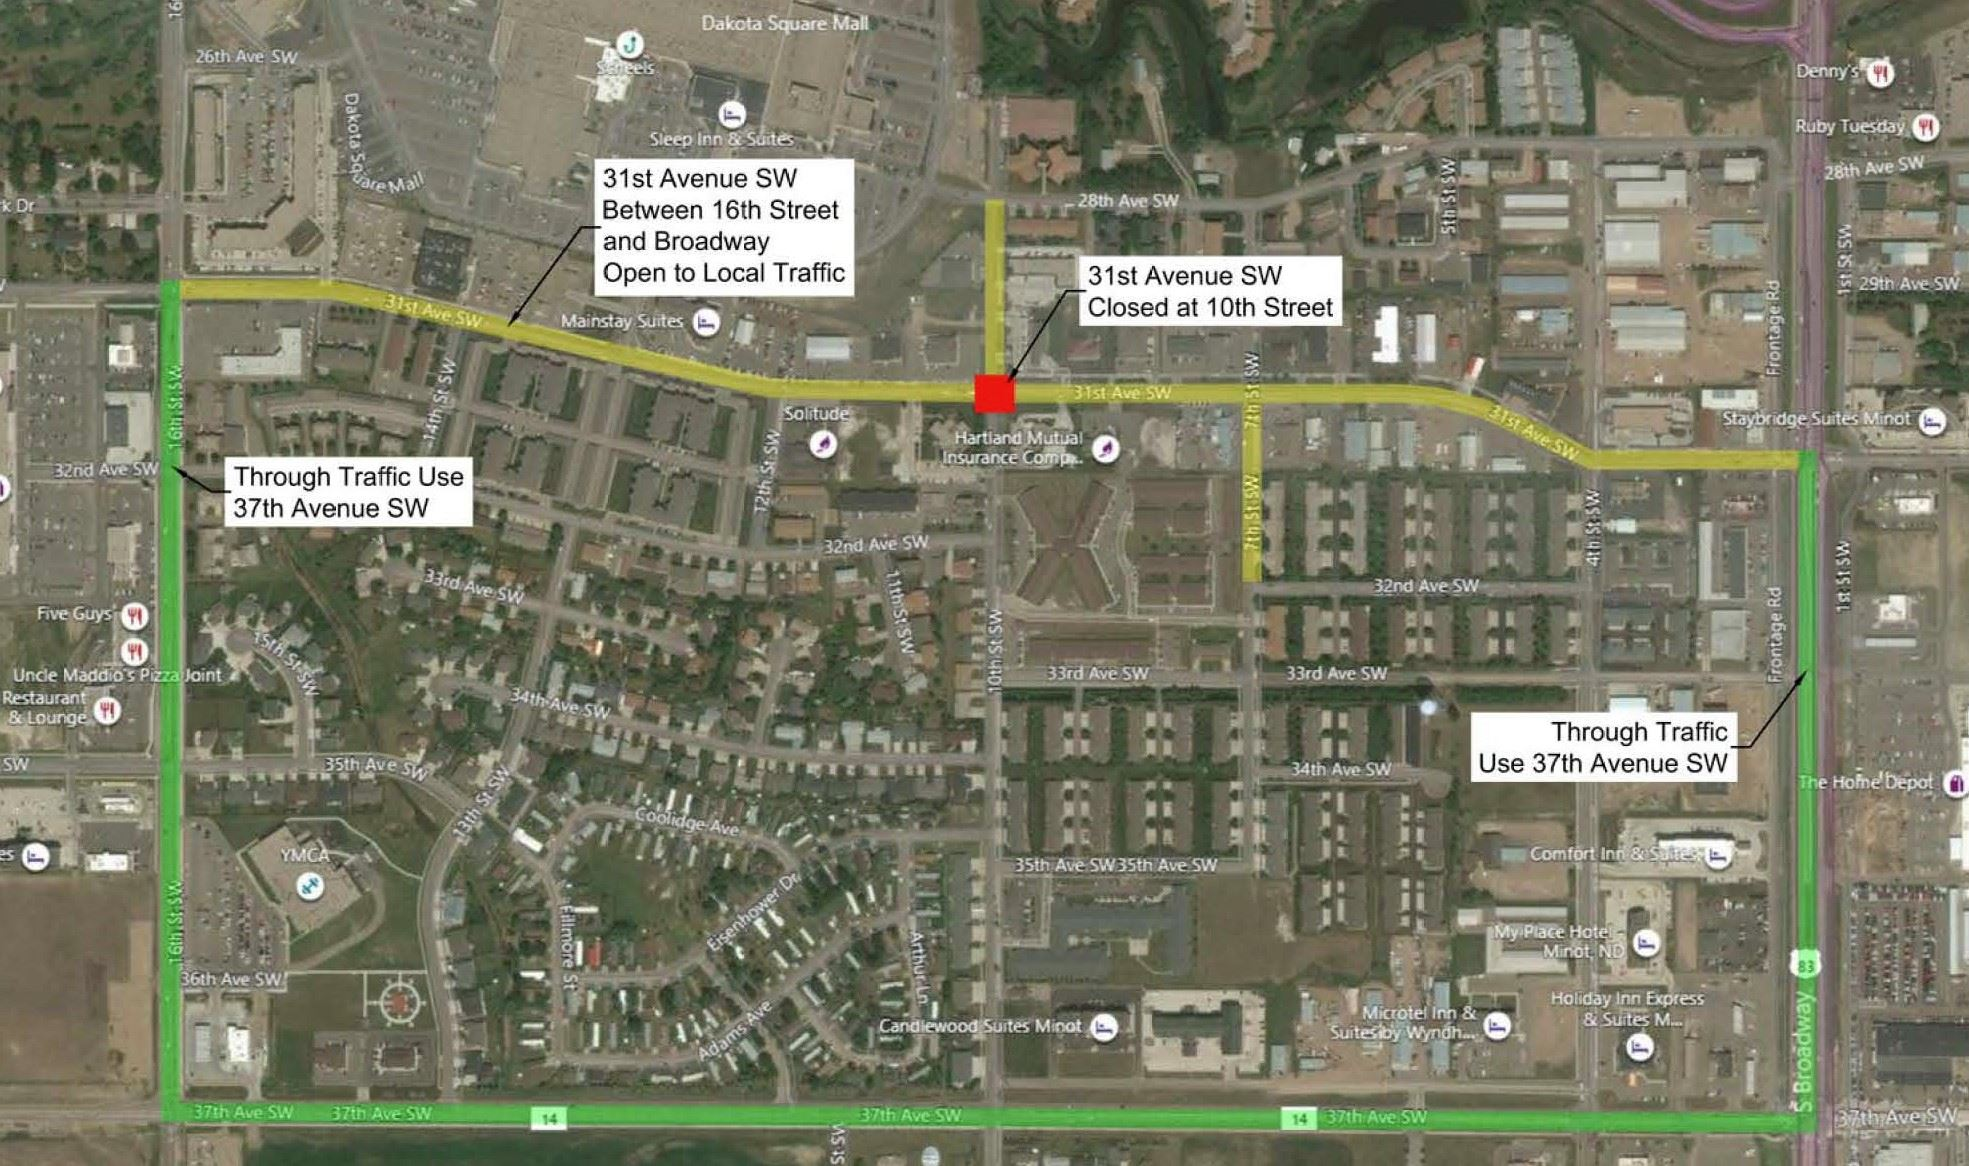 graphic of 10th St closure, detour to 37th Ave SW